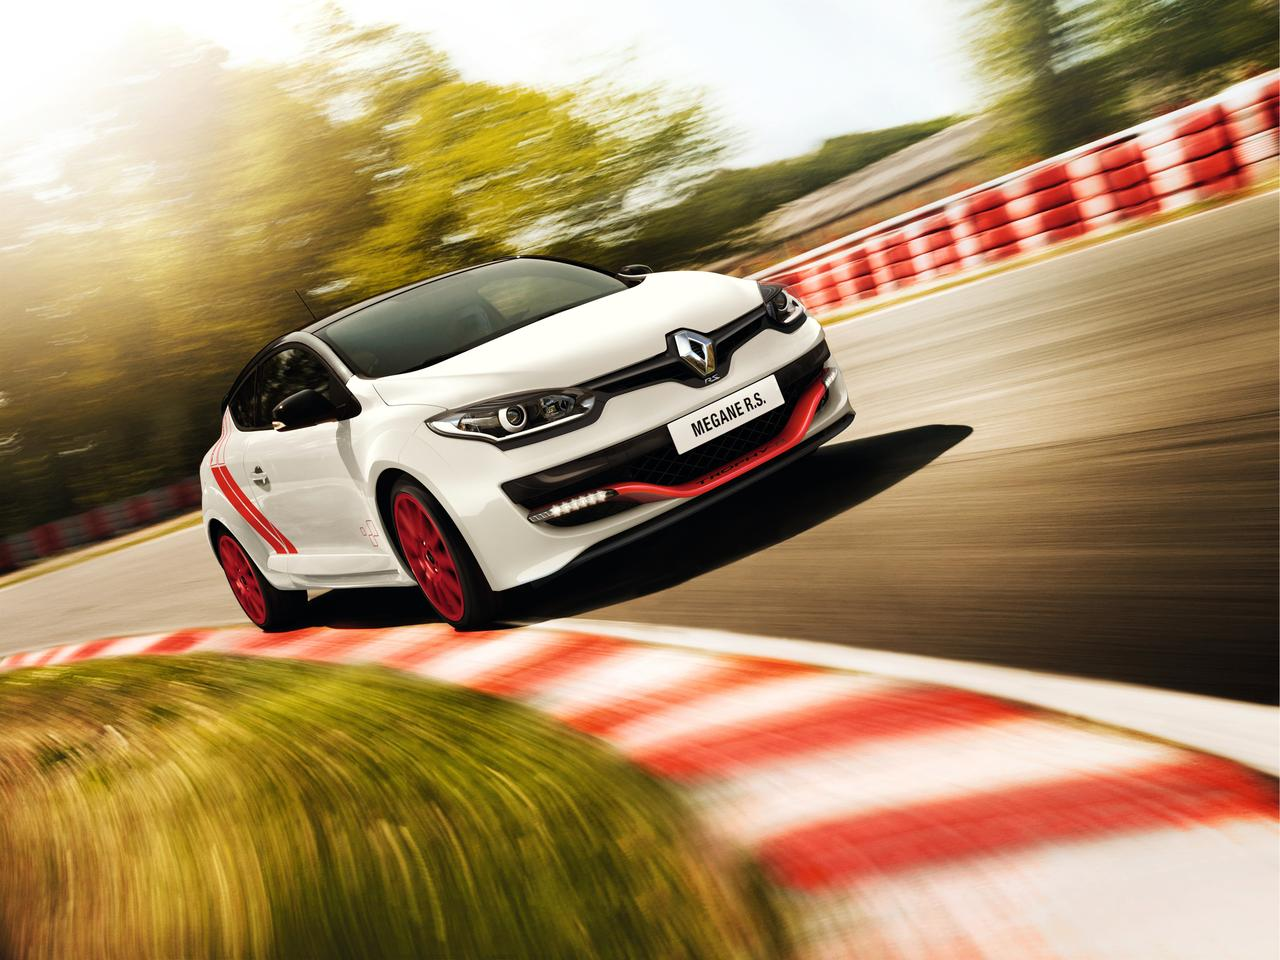 The Renault Megane R.S. 275 Trophy-R in action at the Nürburgring